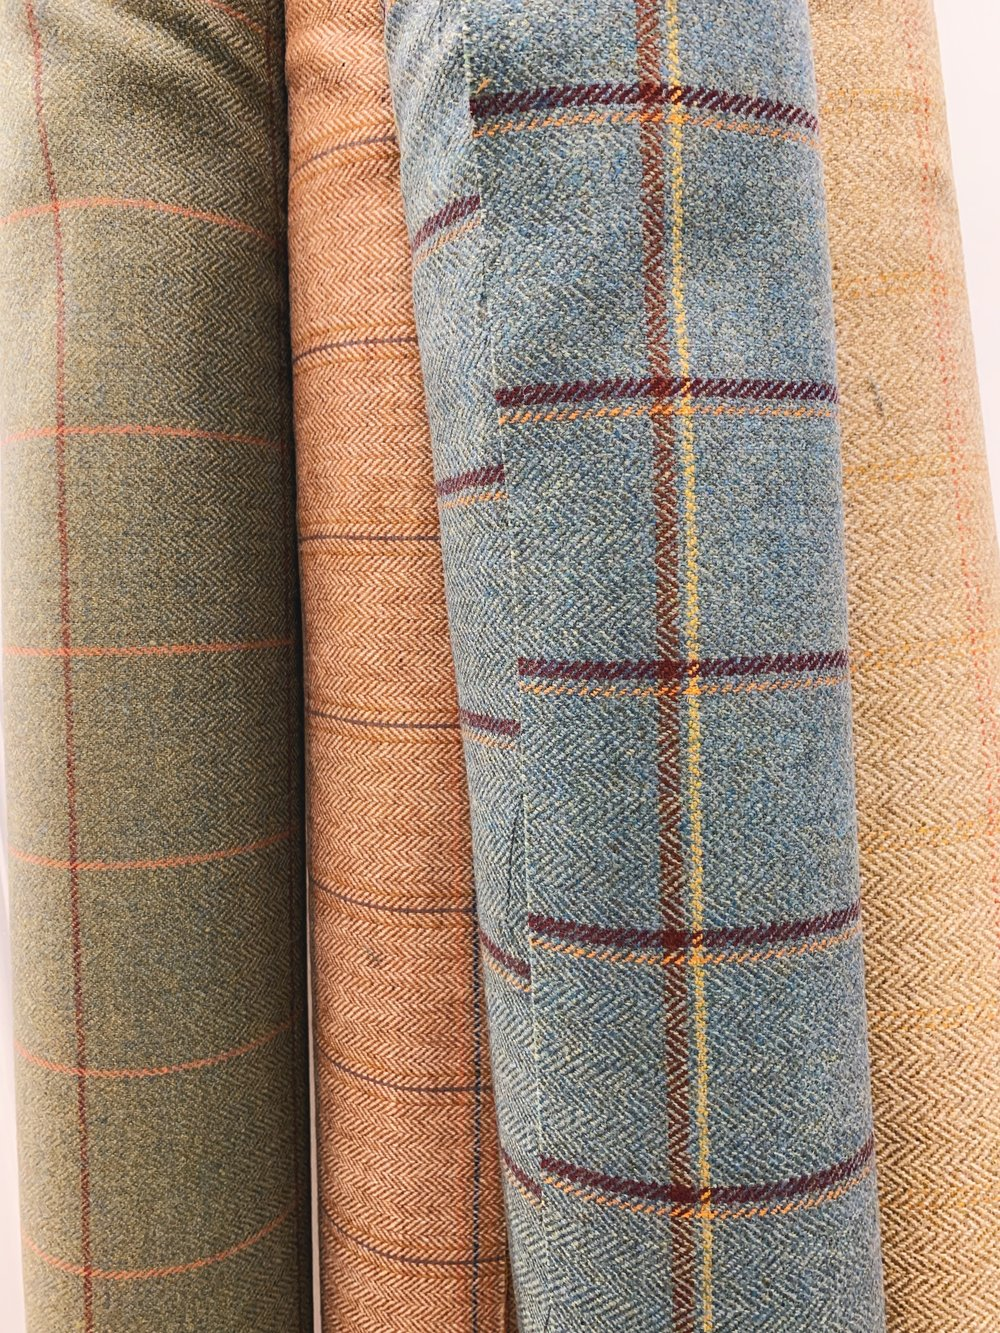 A selection of Windowpane Check Tweeds from Johnstons of Elgin